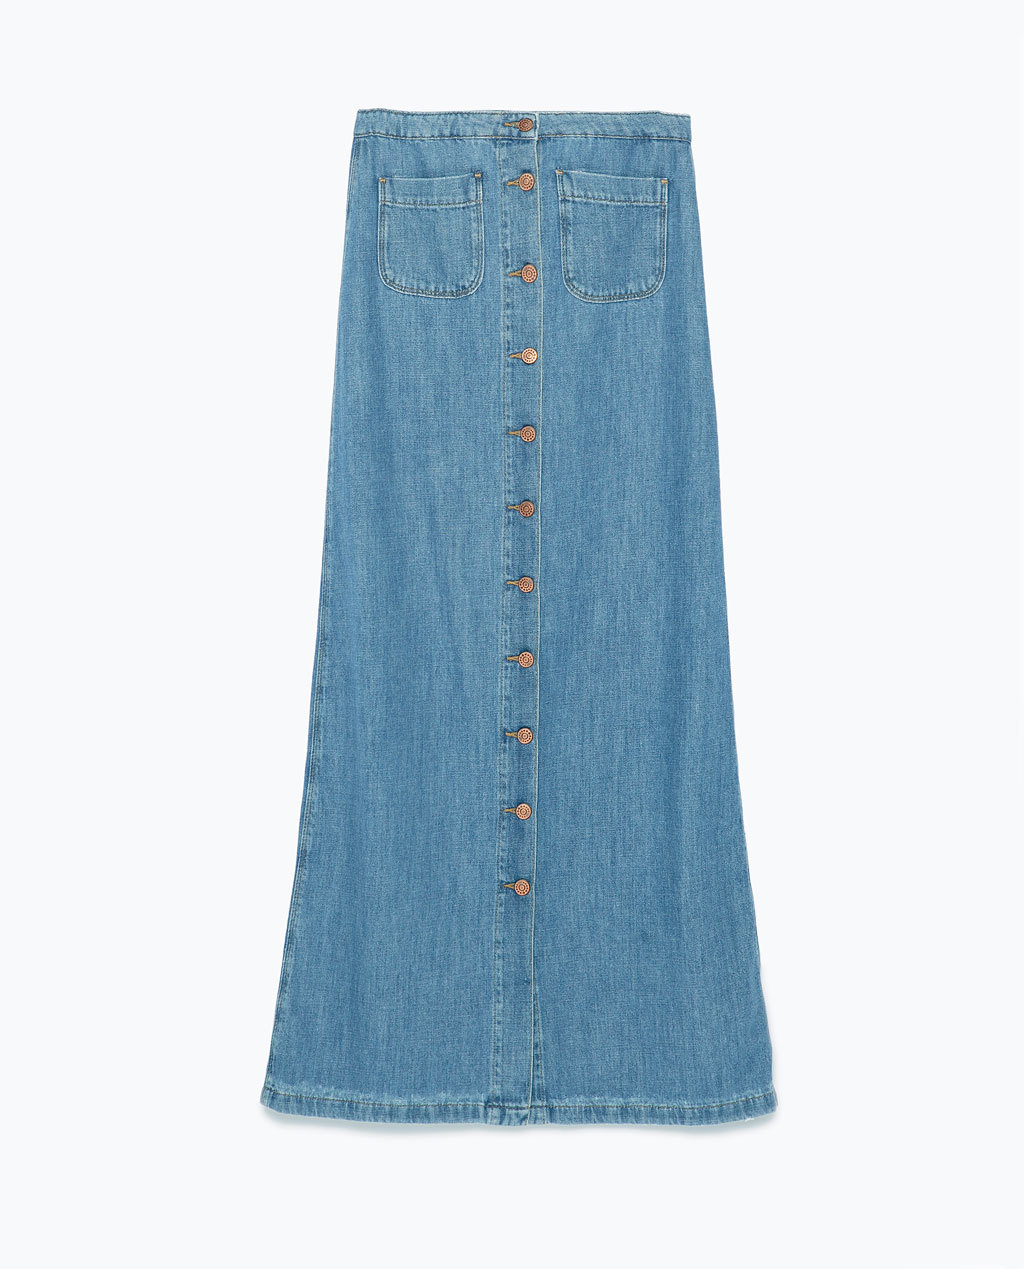 Long Denim Skirt - pattern: plain; fit: loose/voluminous; waist: high rise; predominant colour: denim; occasions: casual; length: floor length; style: maxi skirt; fibres: cotton - 100%; texture group: denim; pattern type: fabric; season: s/s 2015; wardrobe: basic